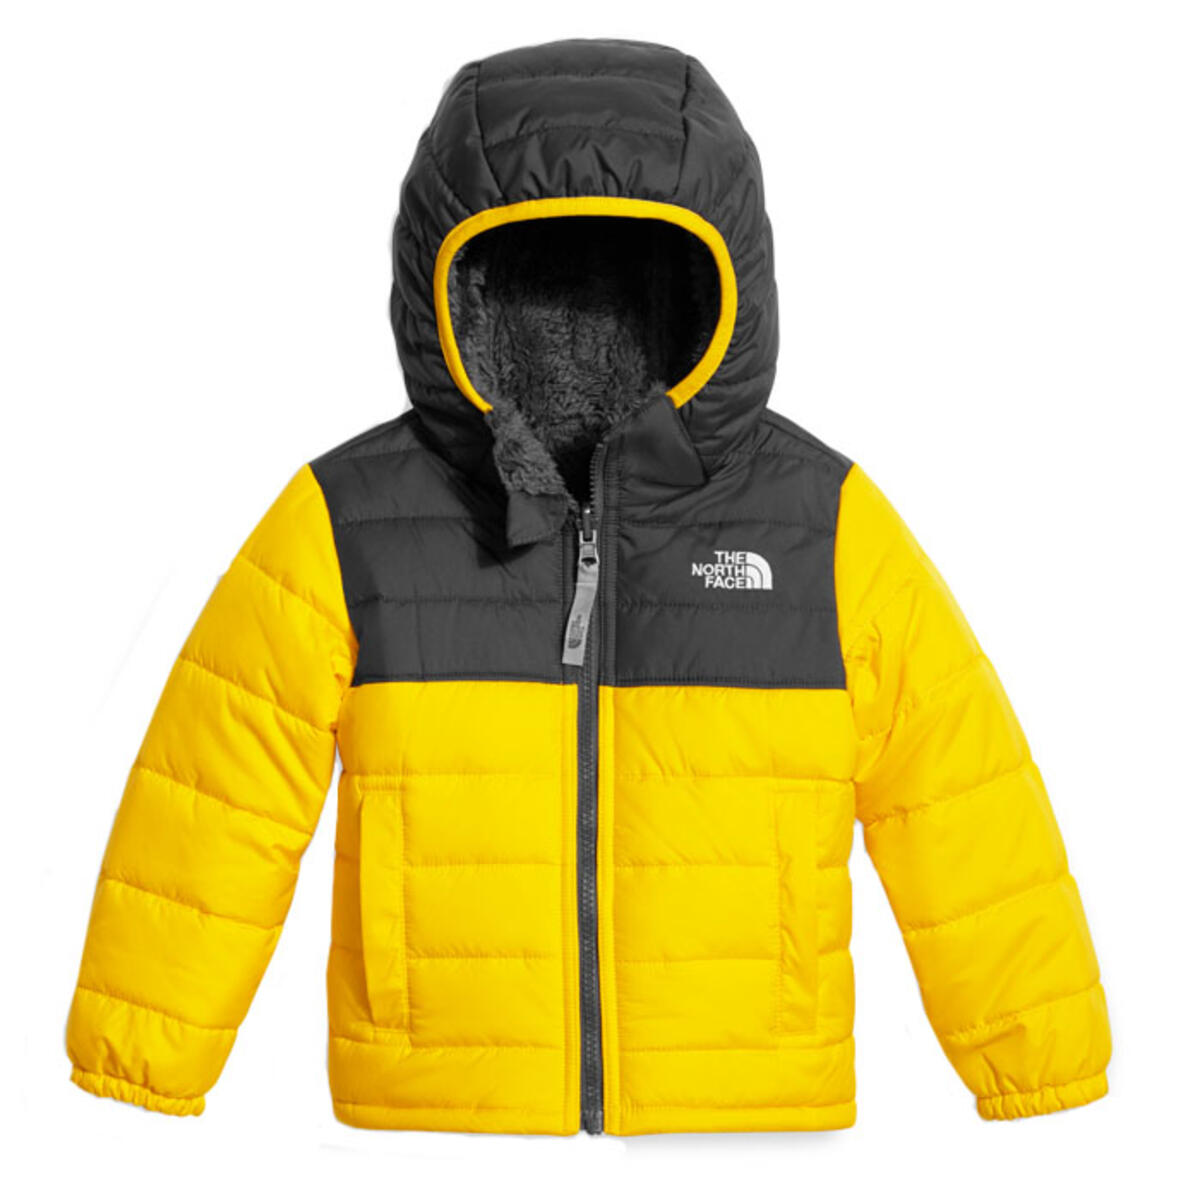 a1894d9d7 The North Face Toddler Boy's Reversible Mount Chimborazo Winter Jacket